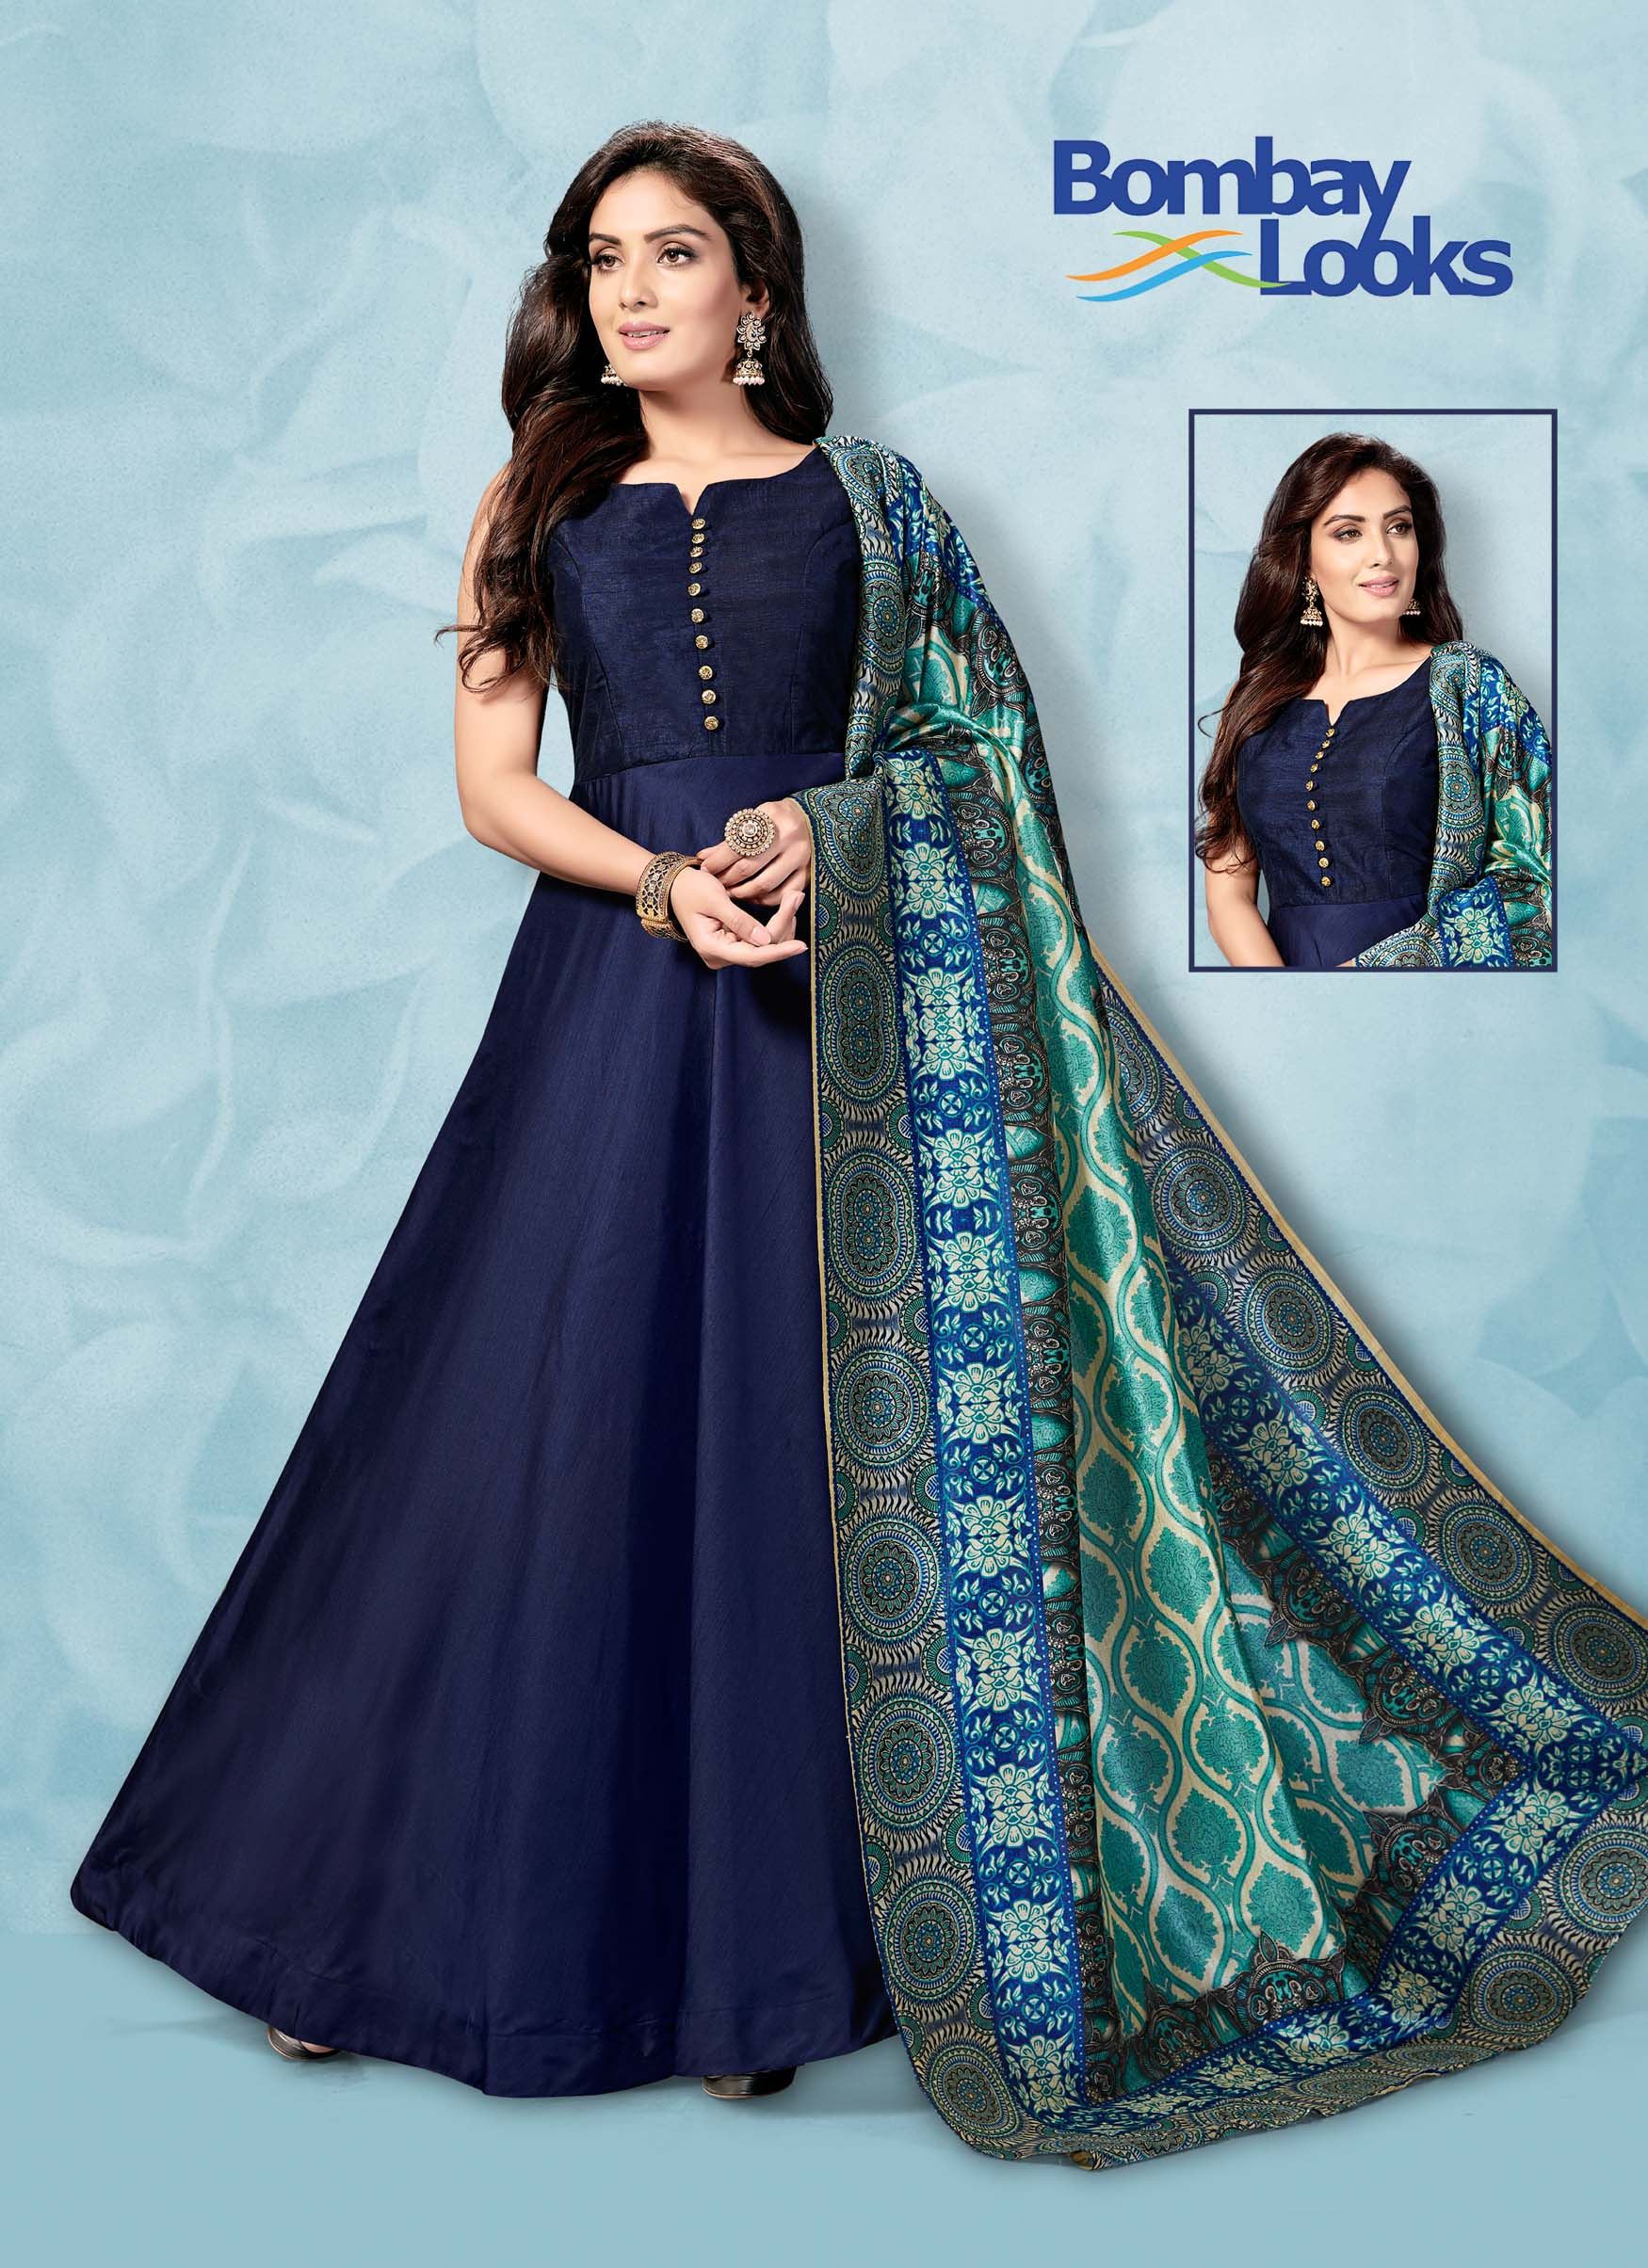 Navy blue barfi silk floor length suit with heavy dupatta